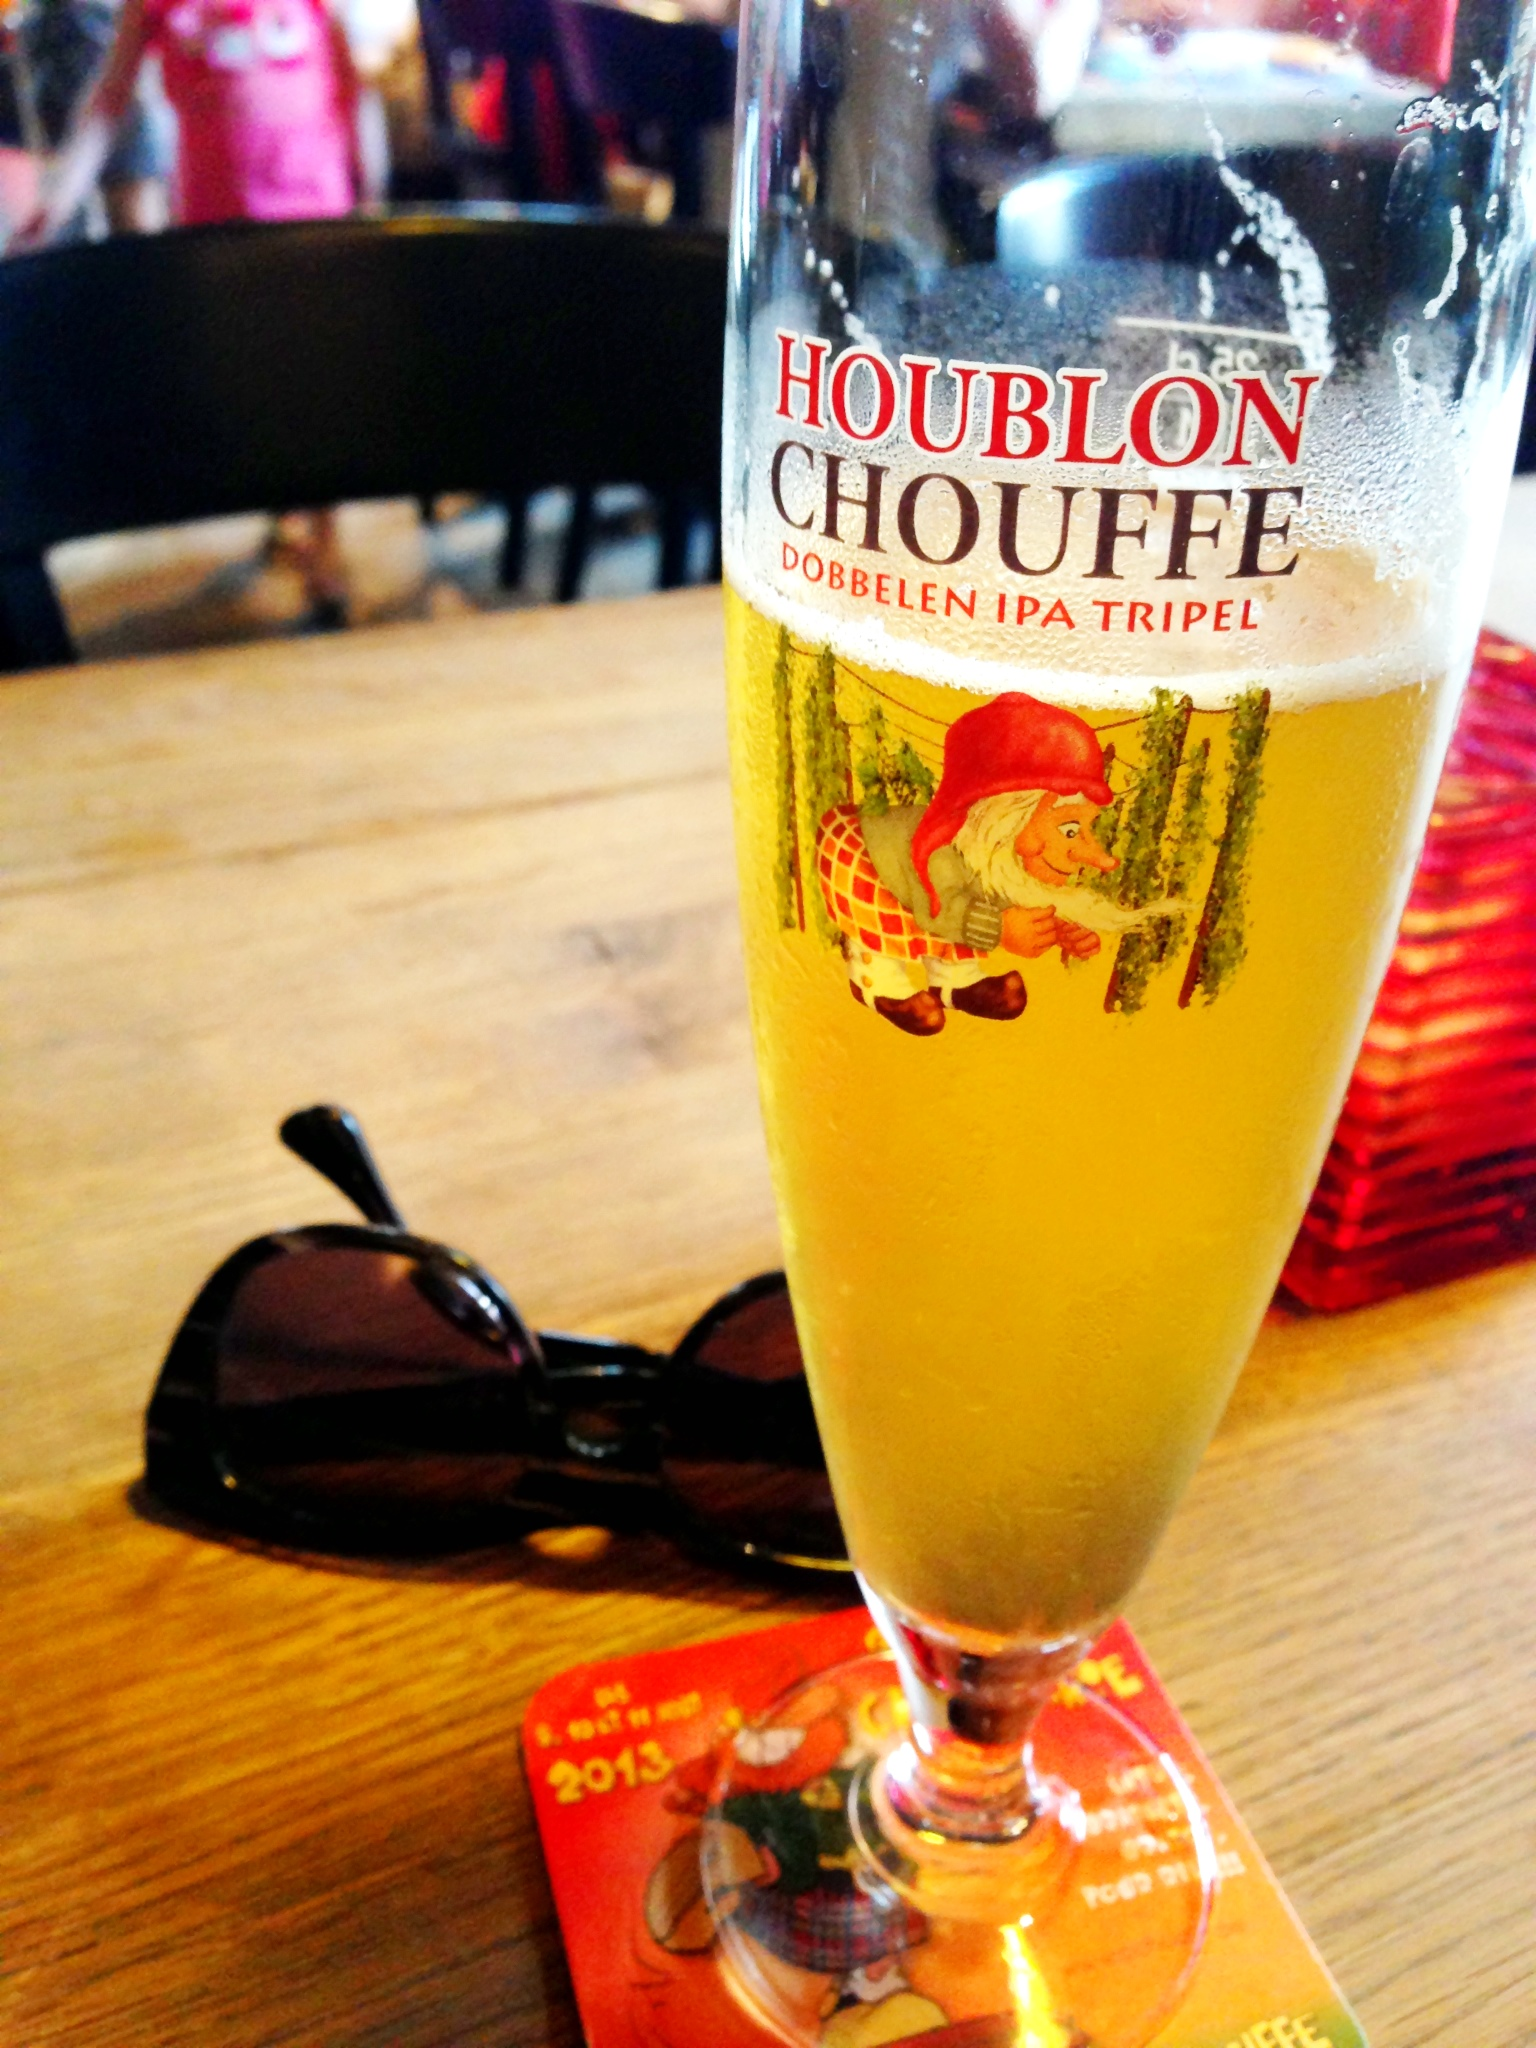 Enjoying an Houblon Chouffe